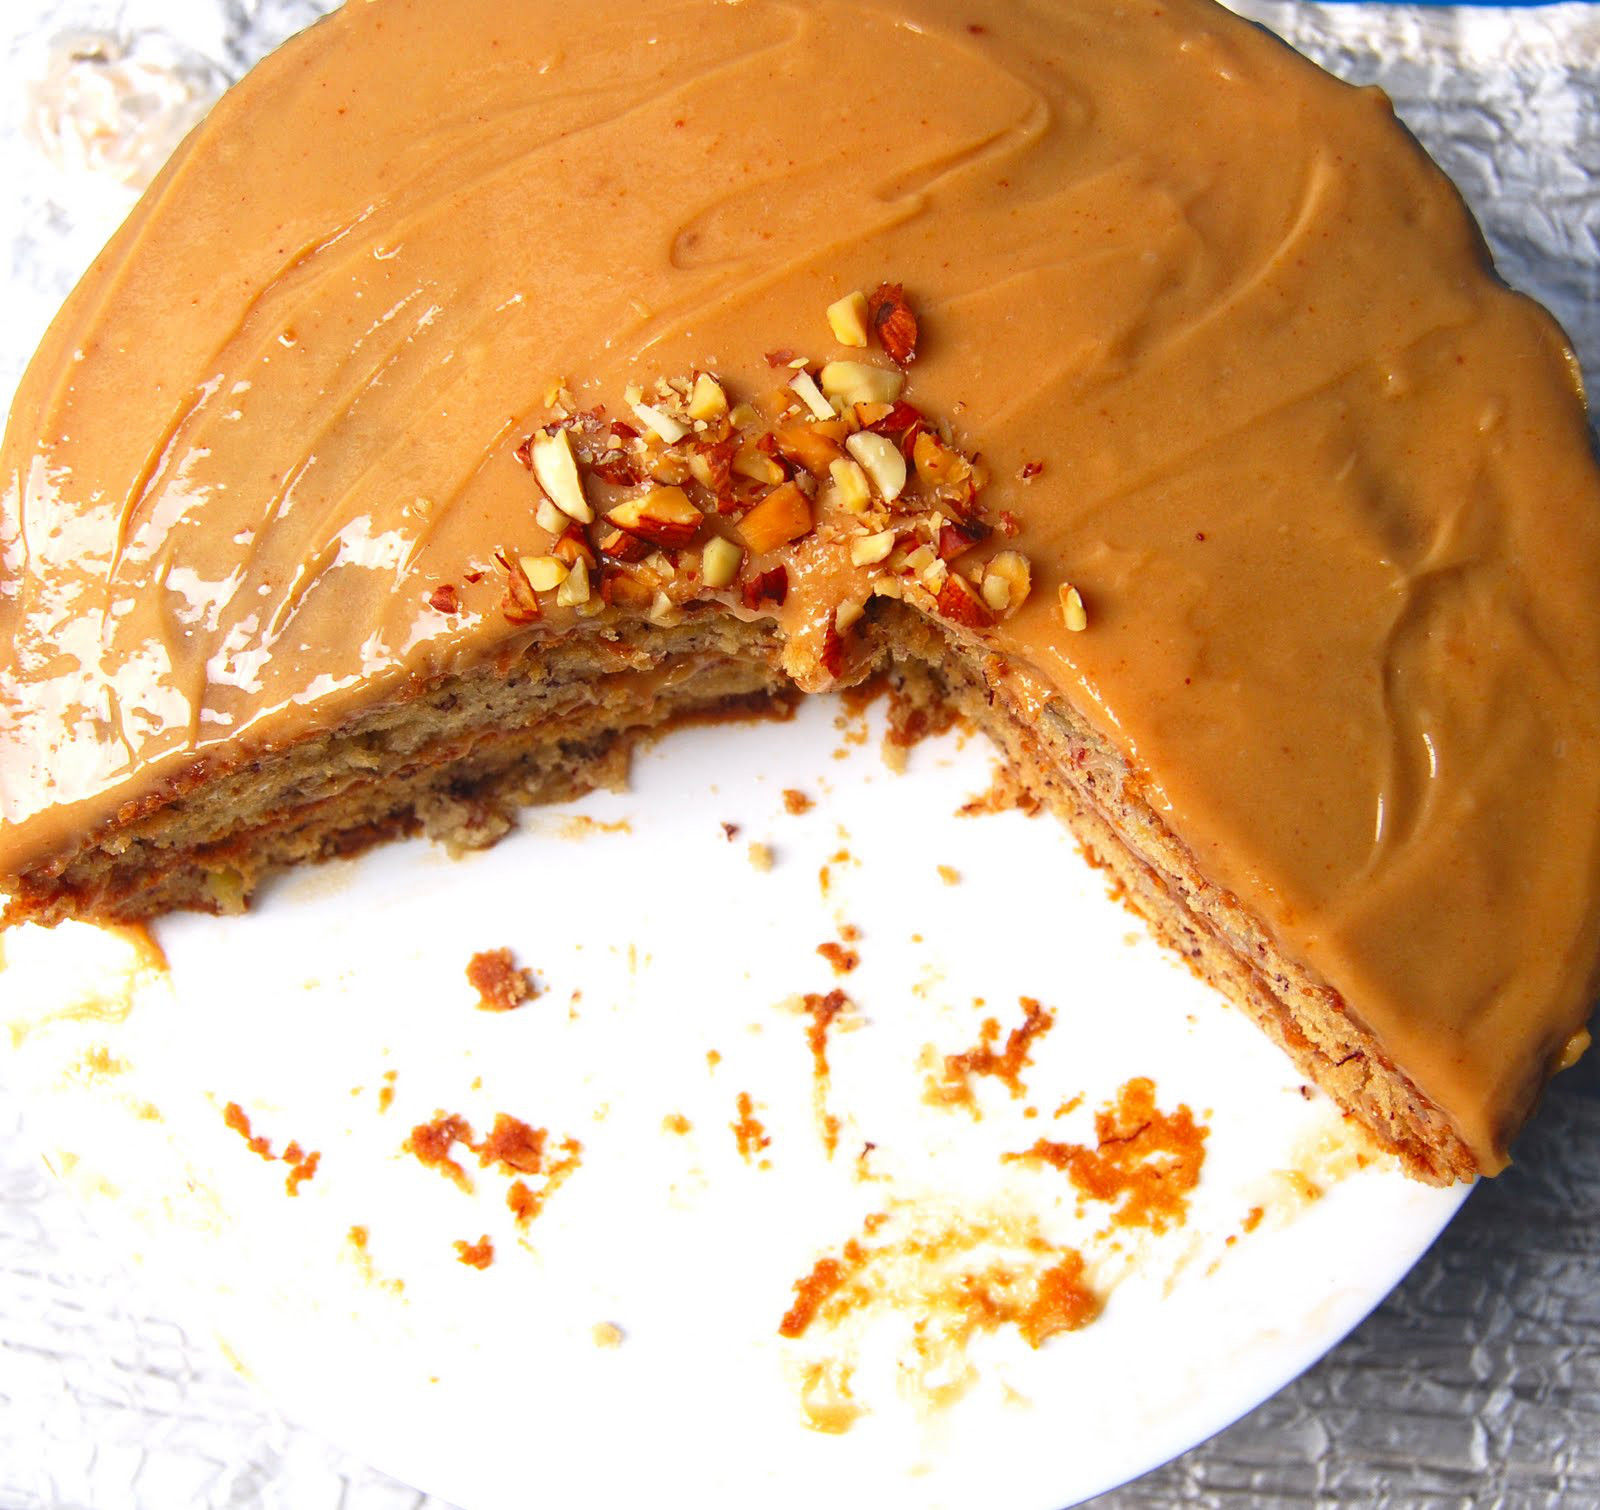 Banana Cake With Peanut Butter Frosting (Vegan)